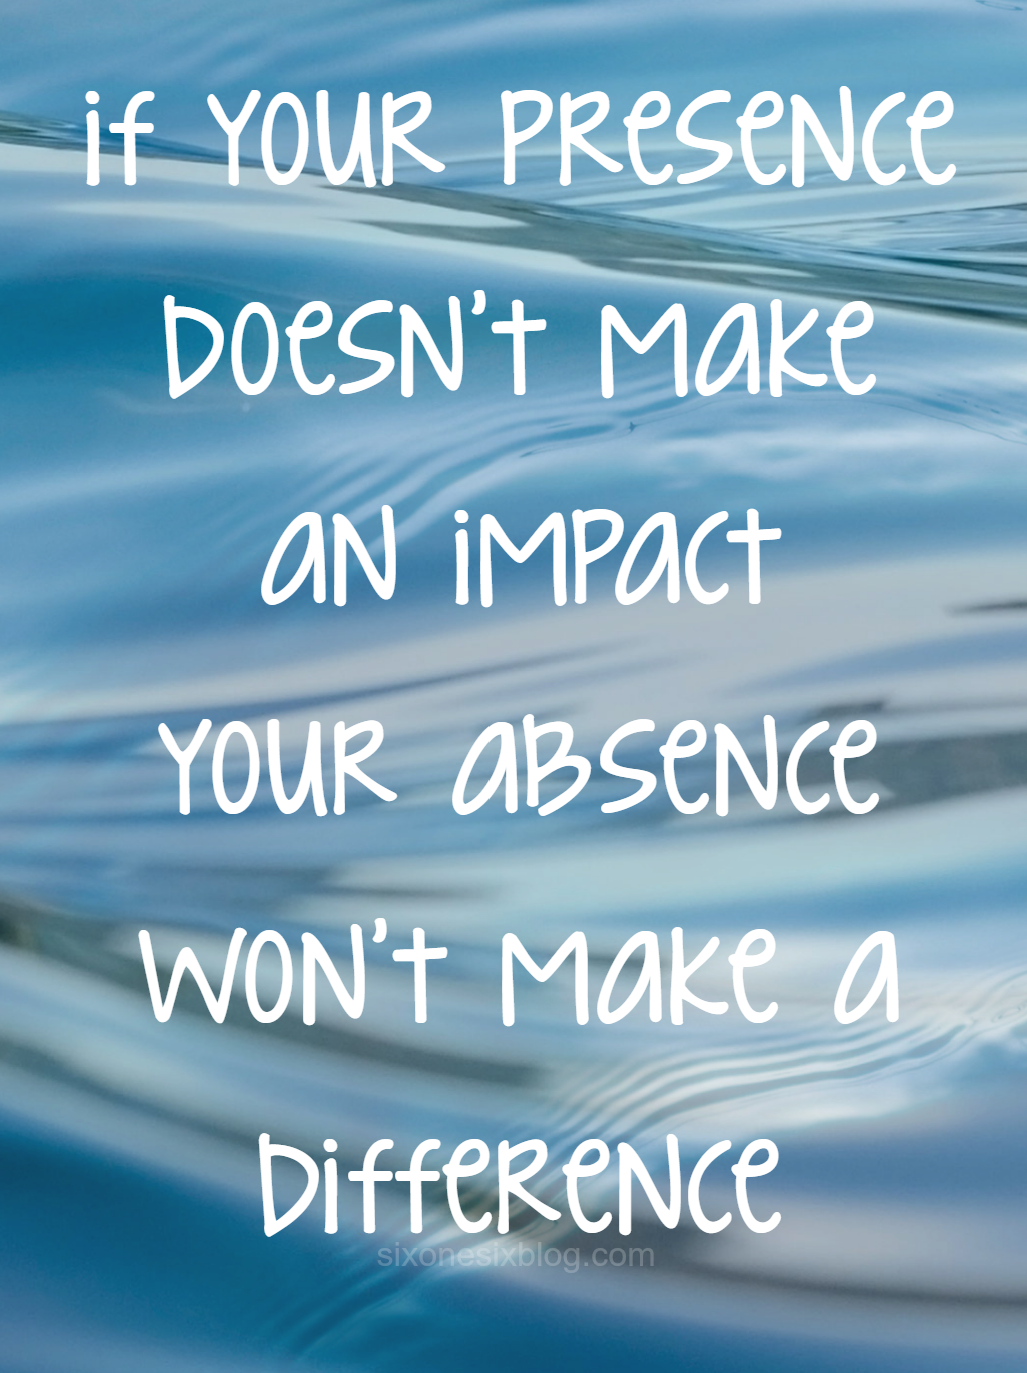 Making A Difference Quotes Be Present Make A Difference  Quotes  Pinterest  Wisdom